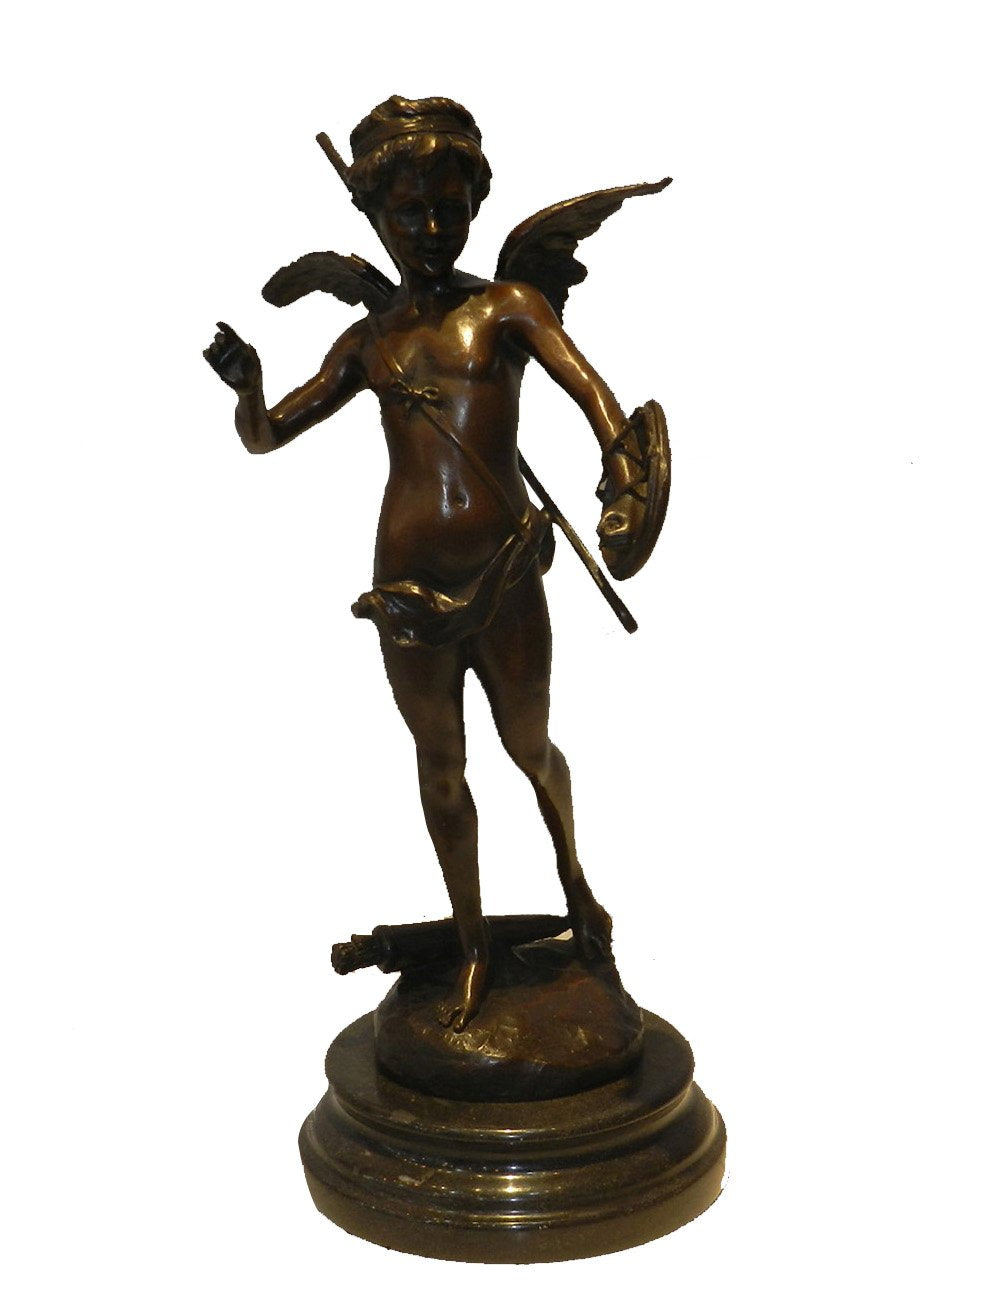 TPY-856 bronze sculpture